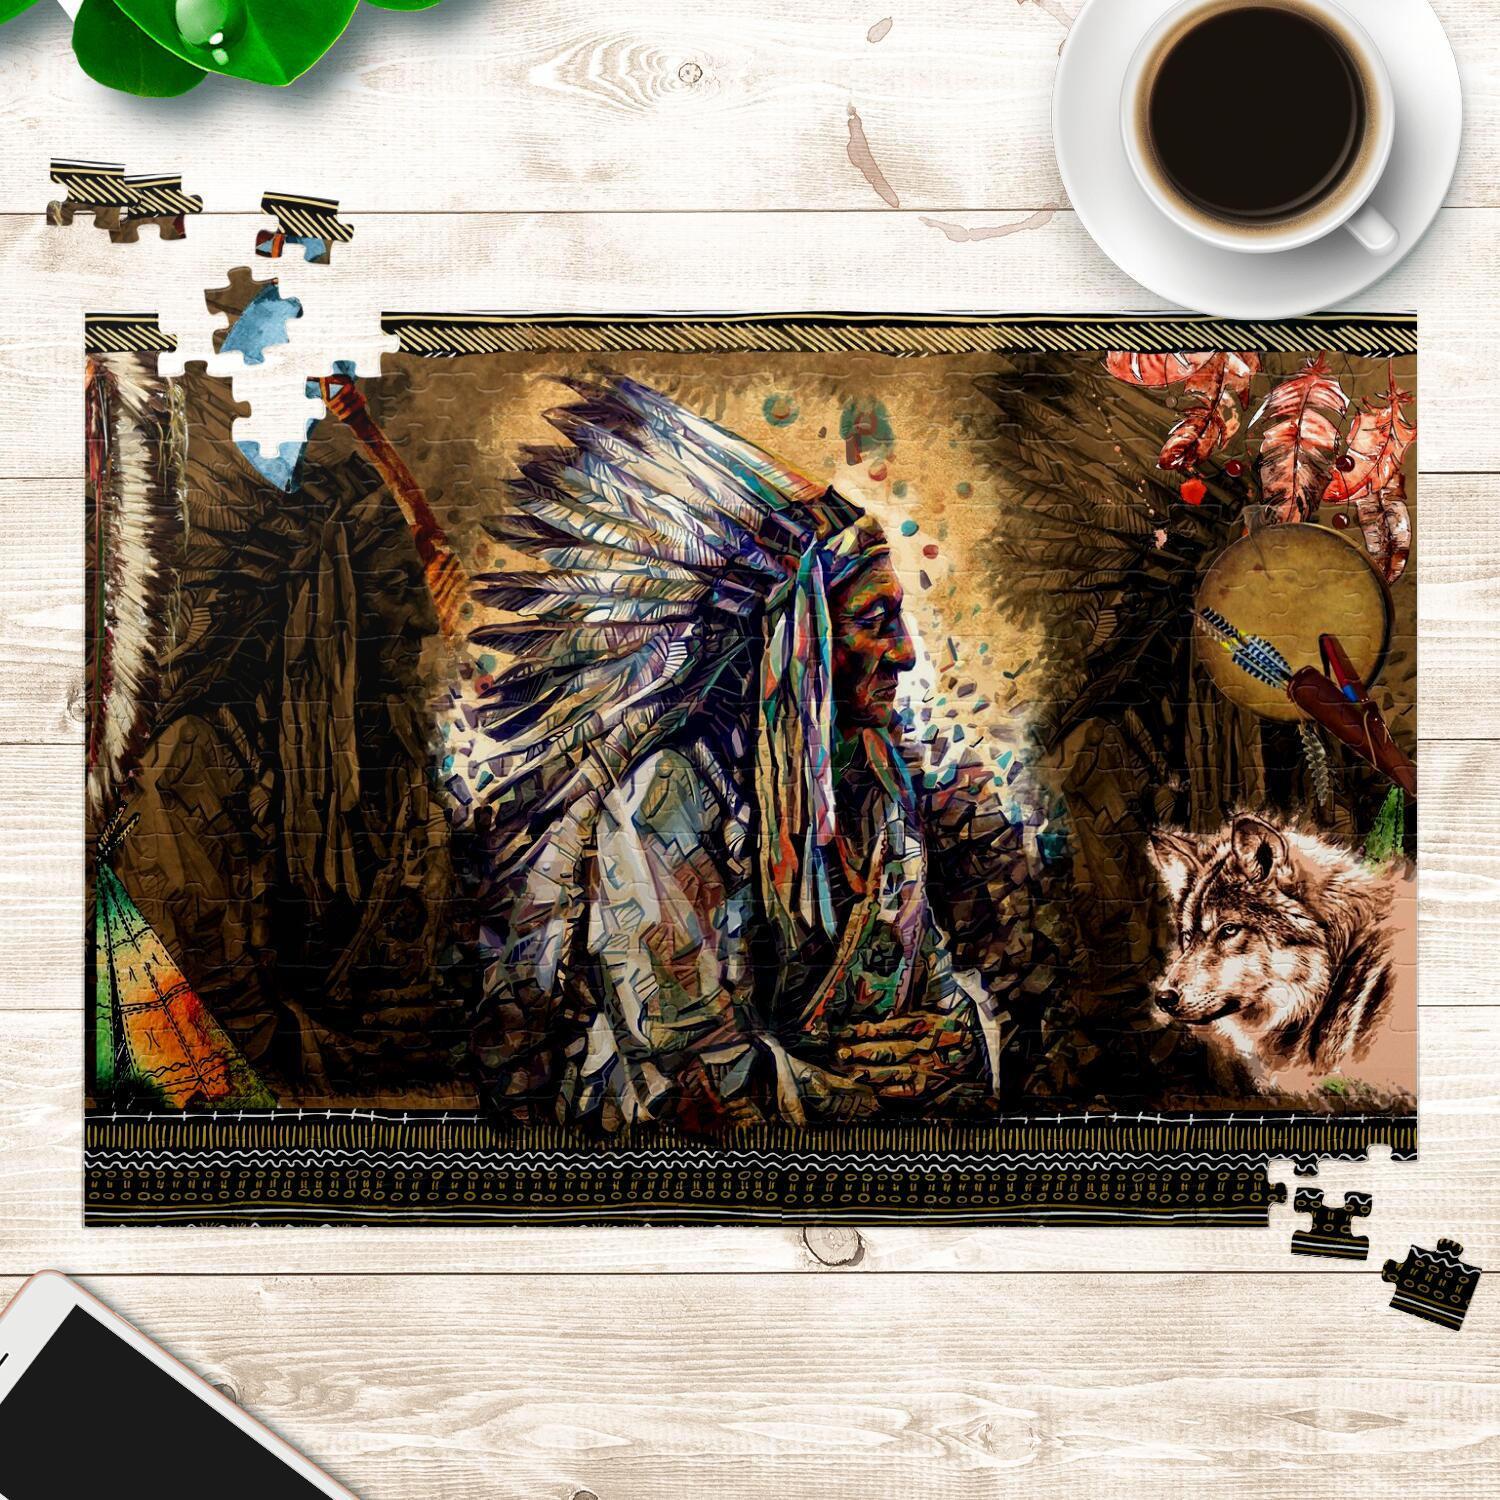 Wolf Warrior Jigsaw Puzzles